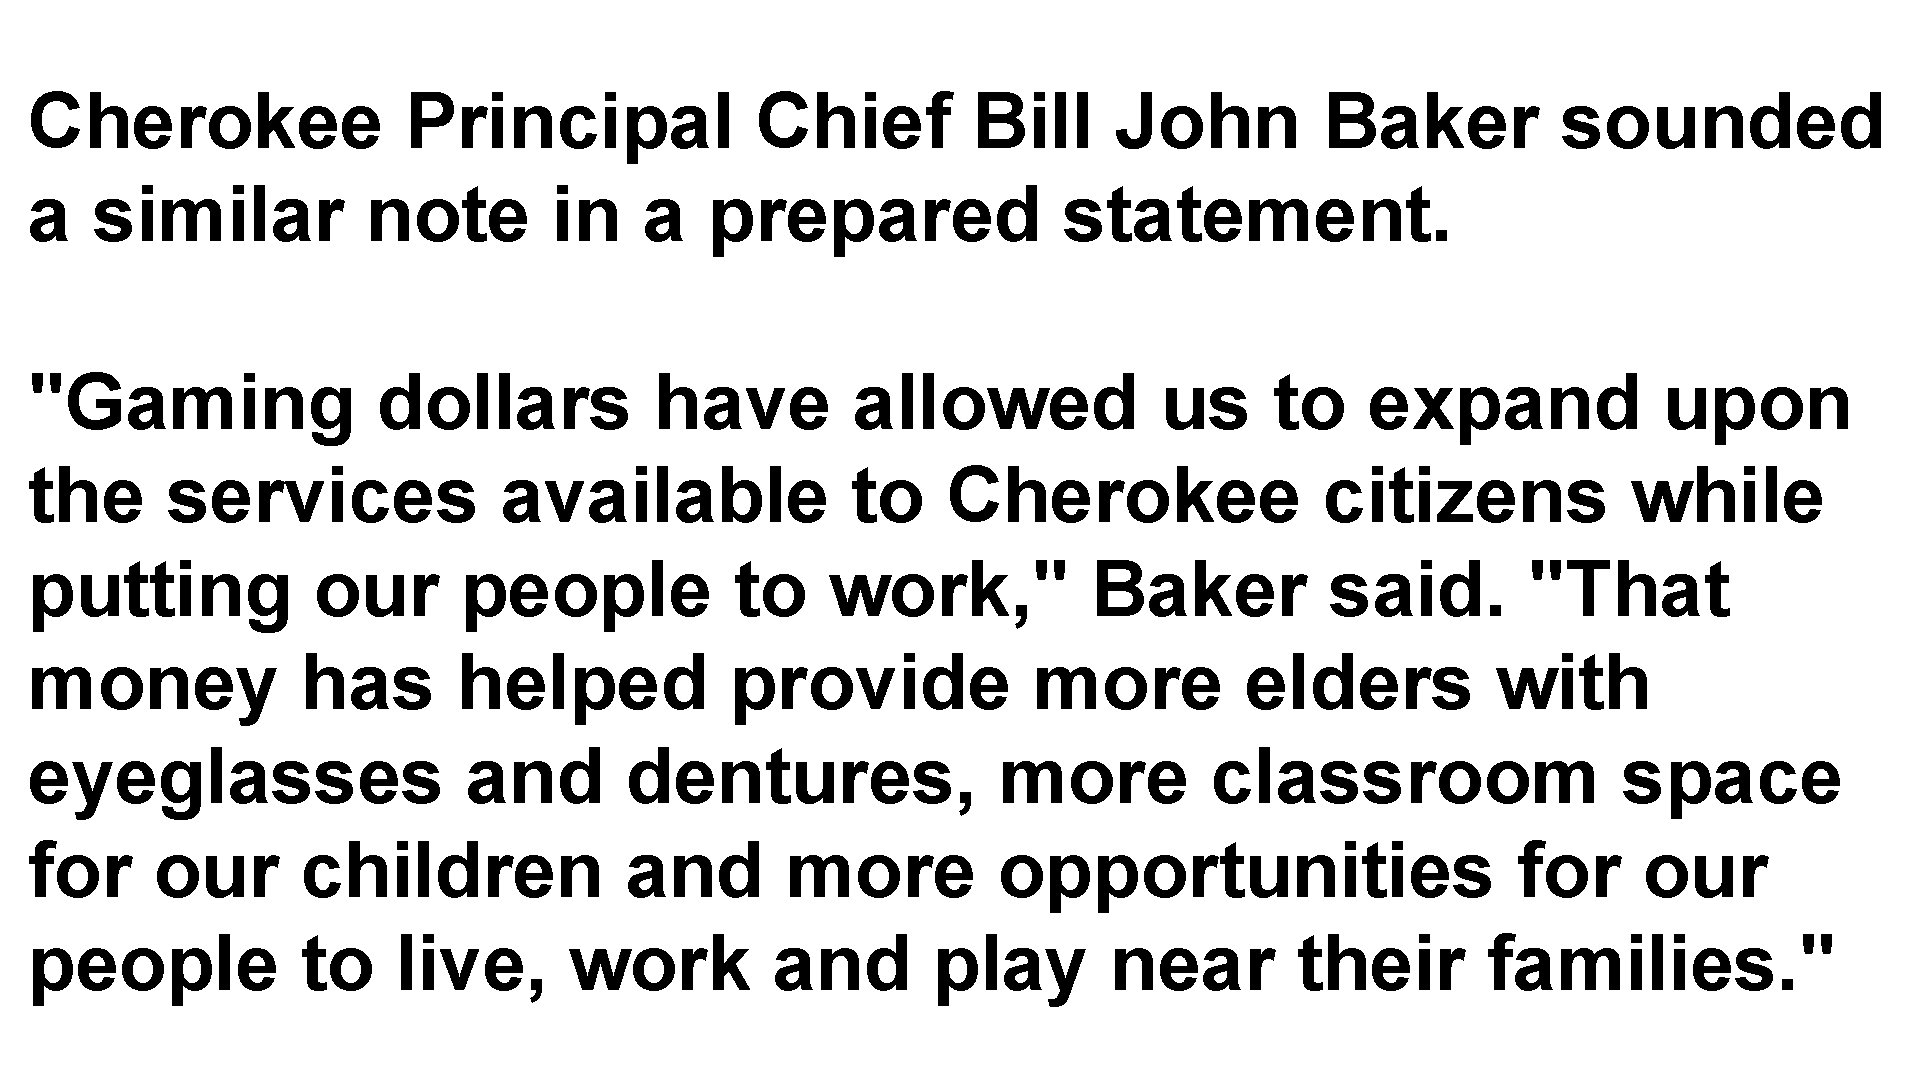 Cherokee Principal Chief Bill John Baker sounded a similar note in a prepared statement.